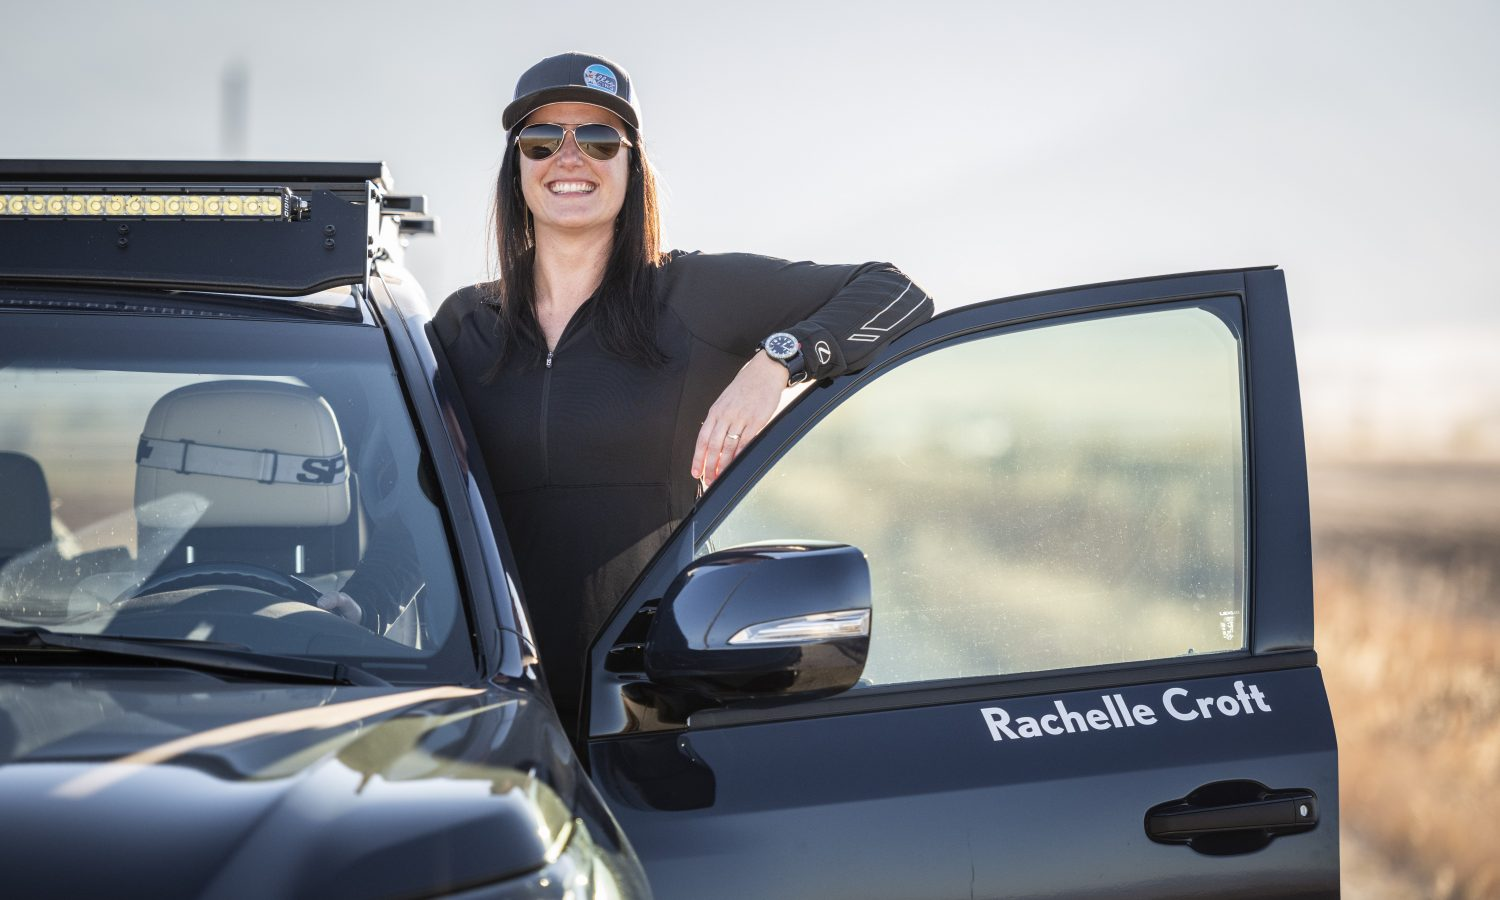 The Rebelle Rally Live Presented by Lexus: Taking Viewers Off-Road with Rachelle Croft